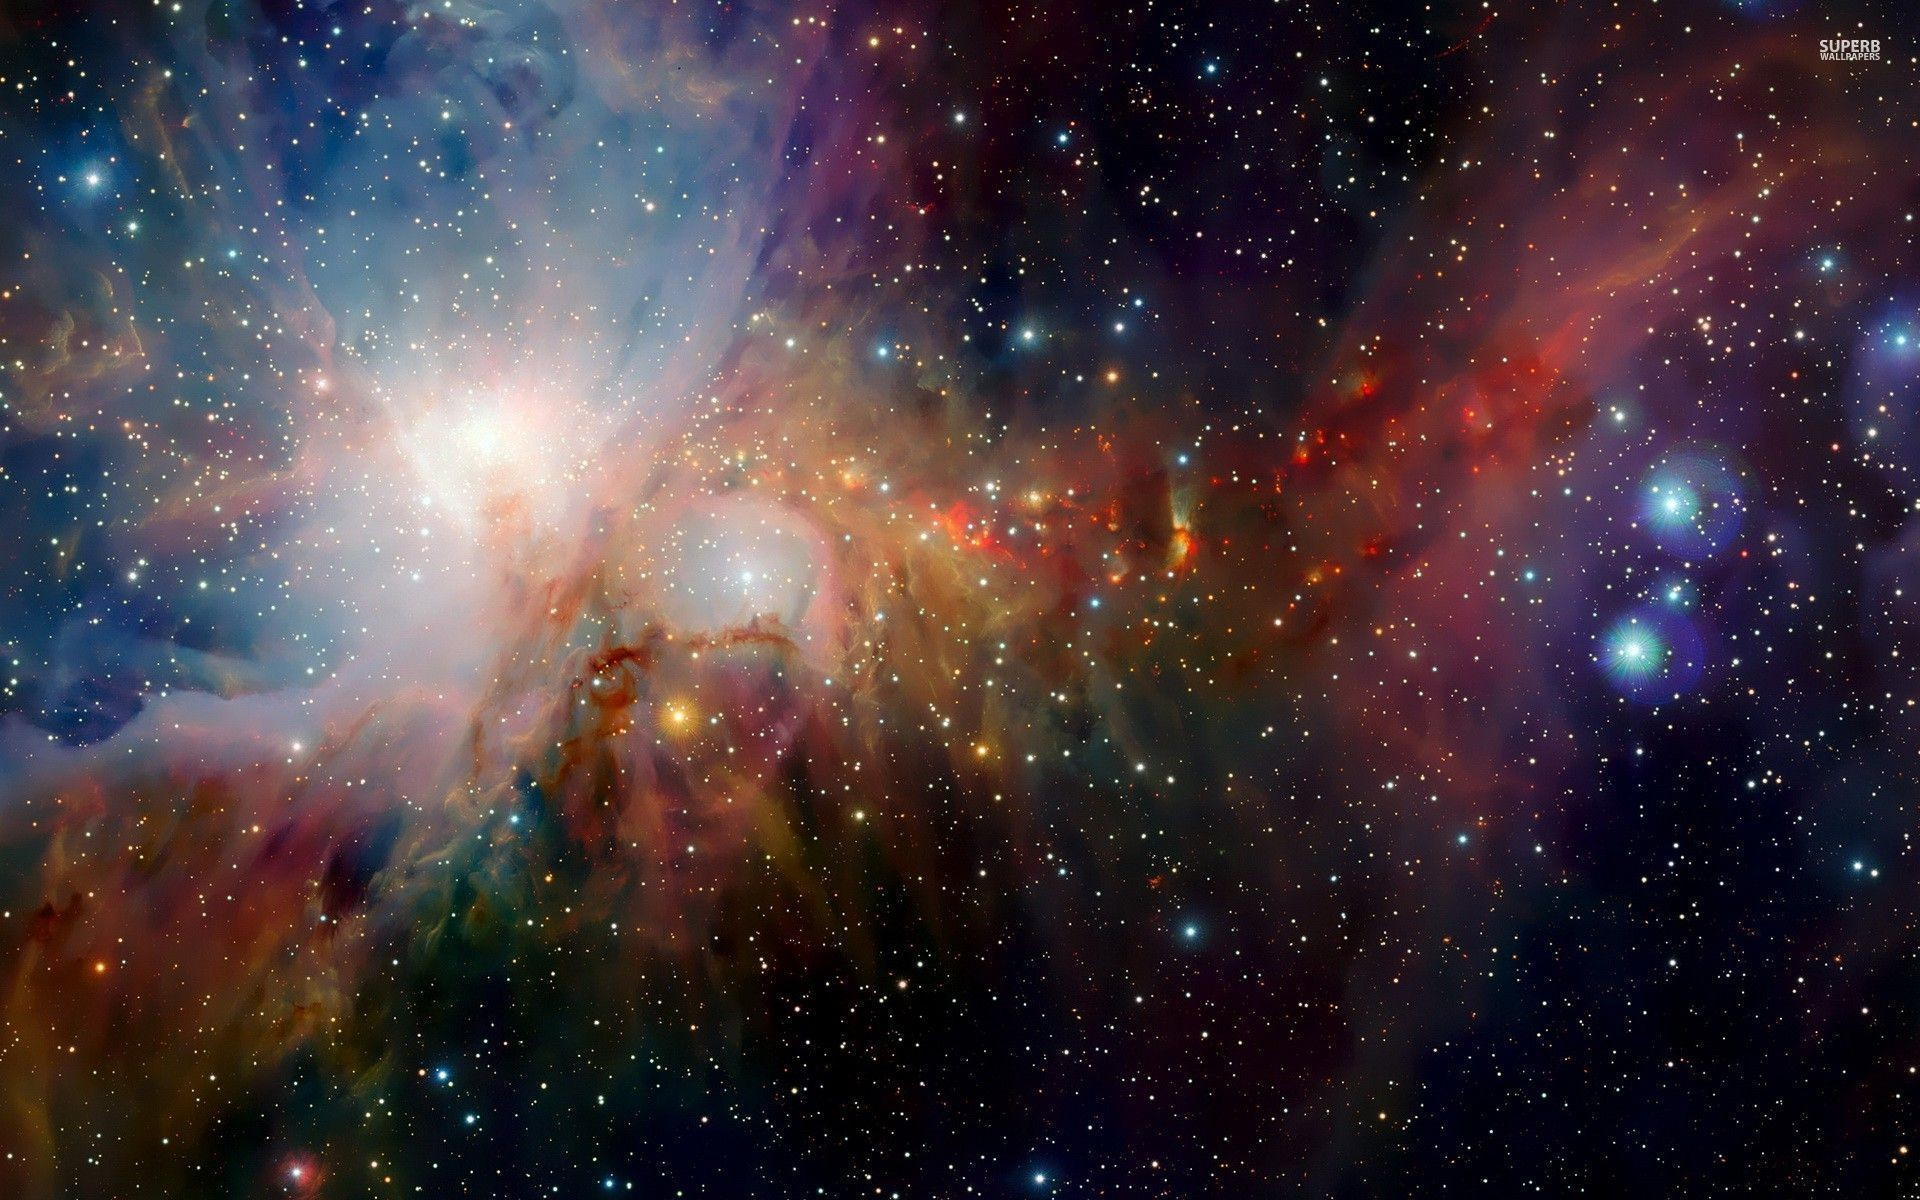 colorful space wallpapers (73+ images)